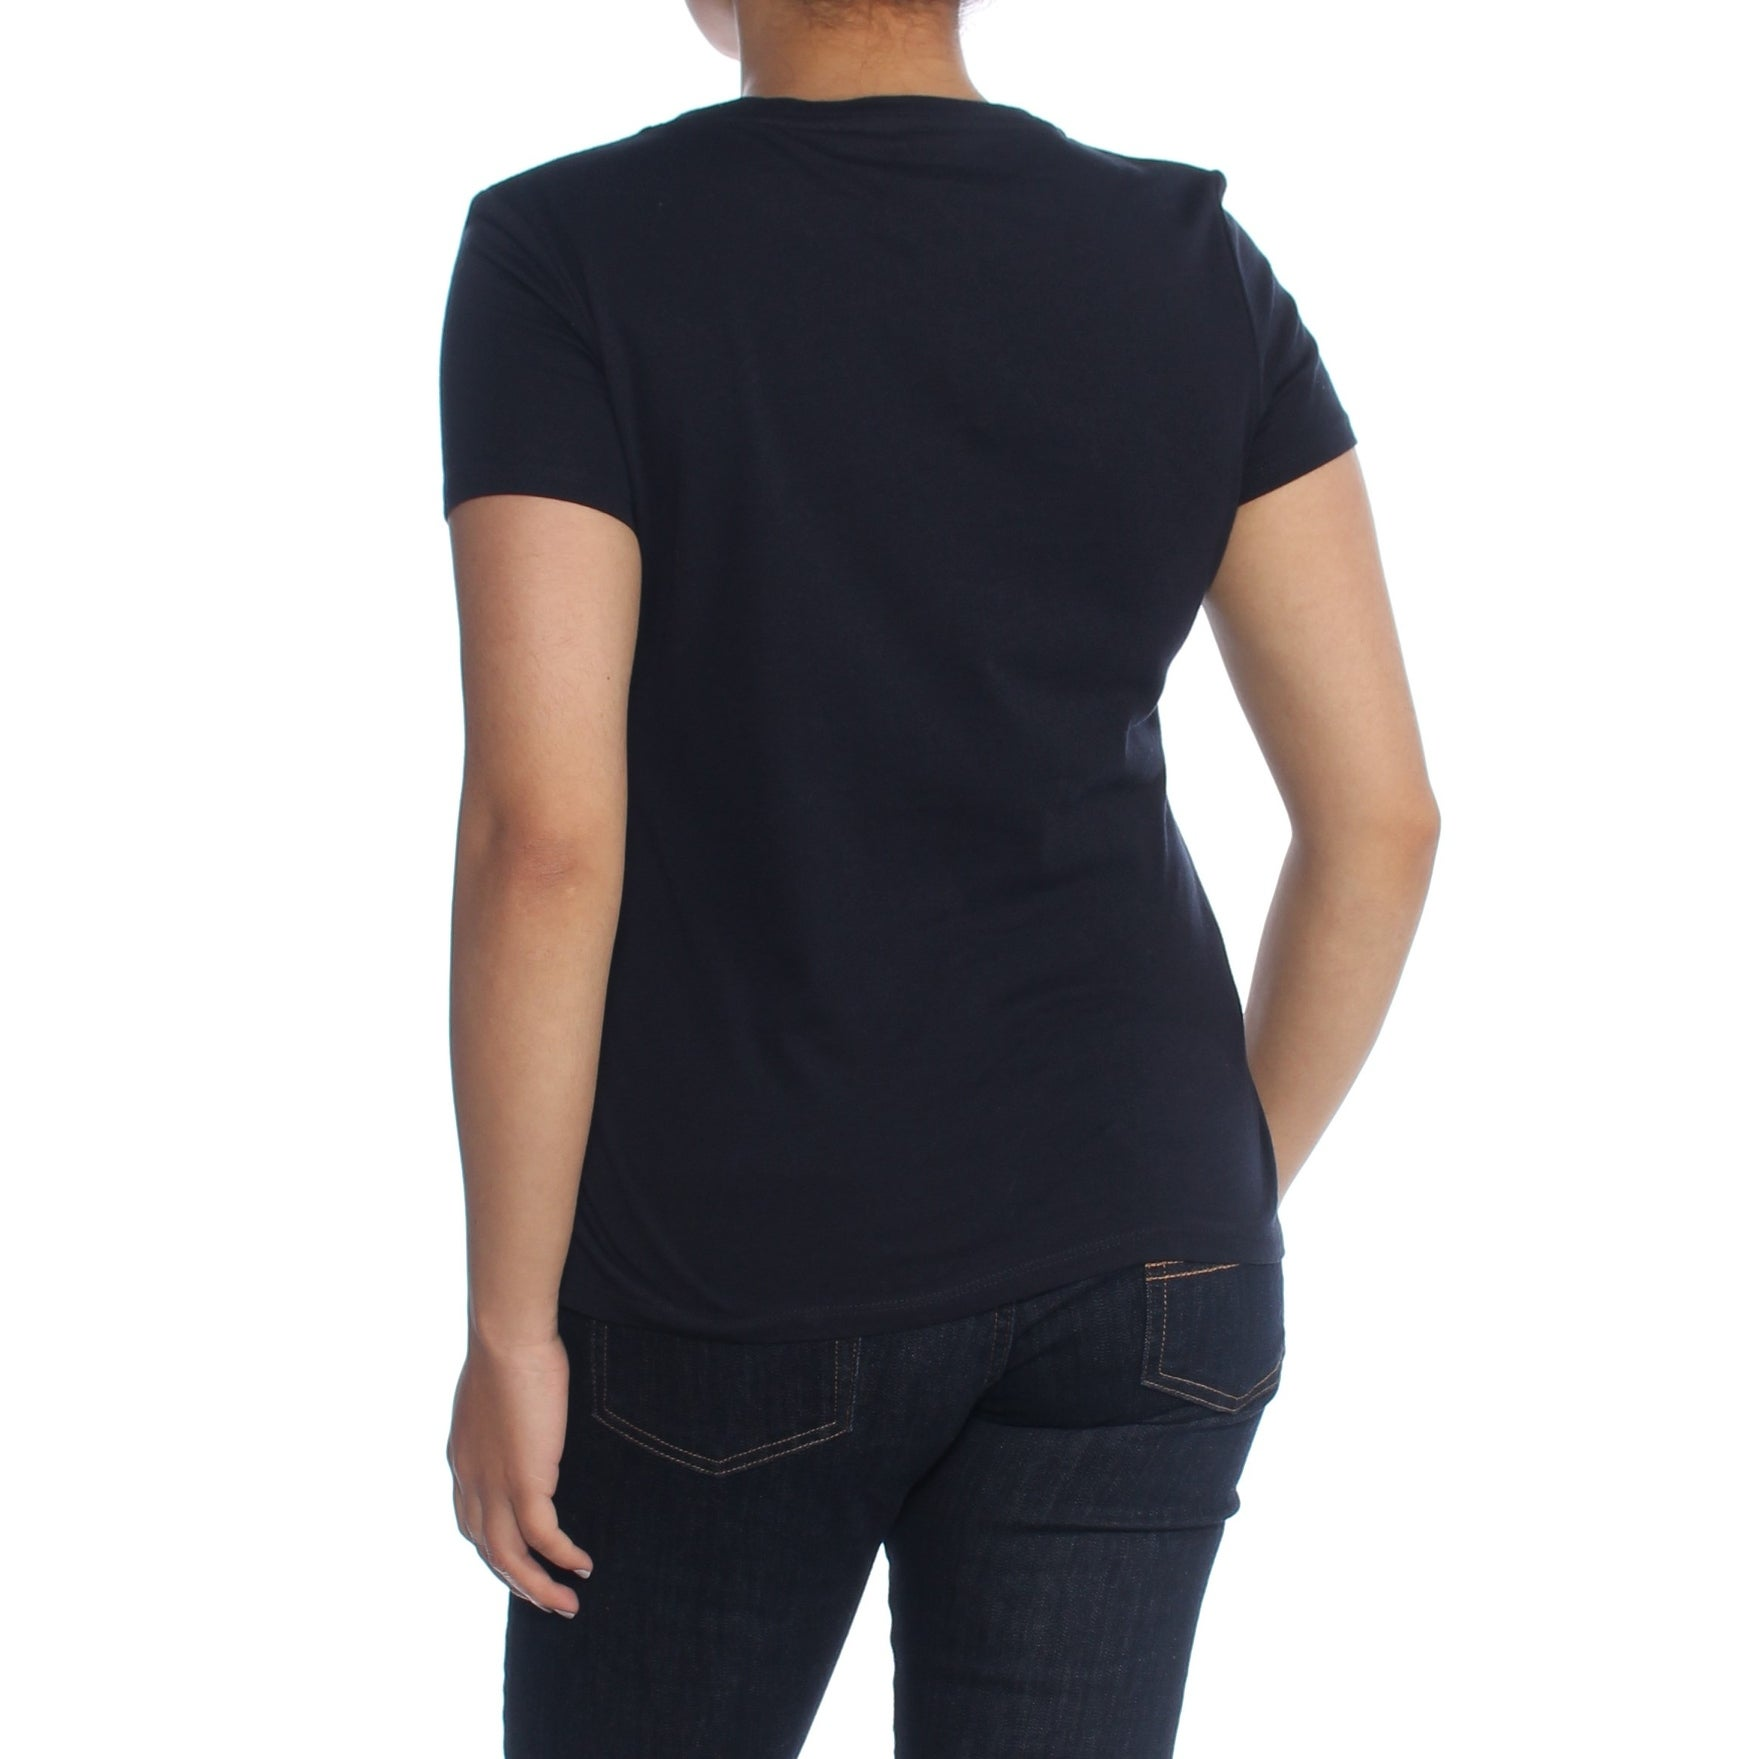 ba43ff32 Shop TOMMY HILFIGER Womens Navy Sequined Short Sleeve Crew Neck T-Shirt Top  Size: S - Free Shipping On Orders Over $45 - Overstock - 28108275